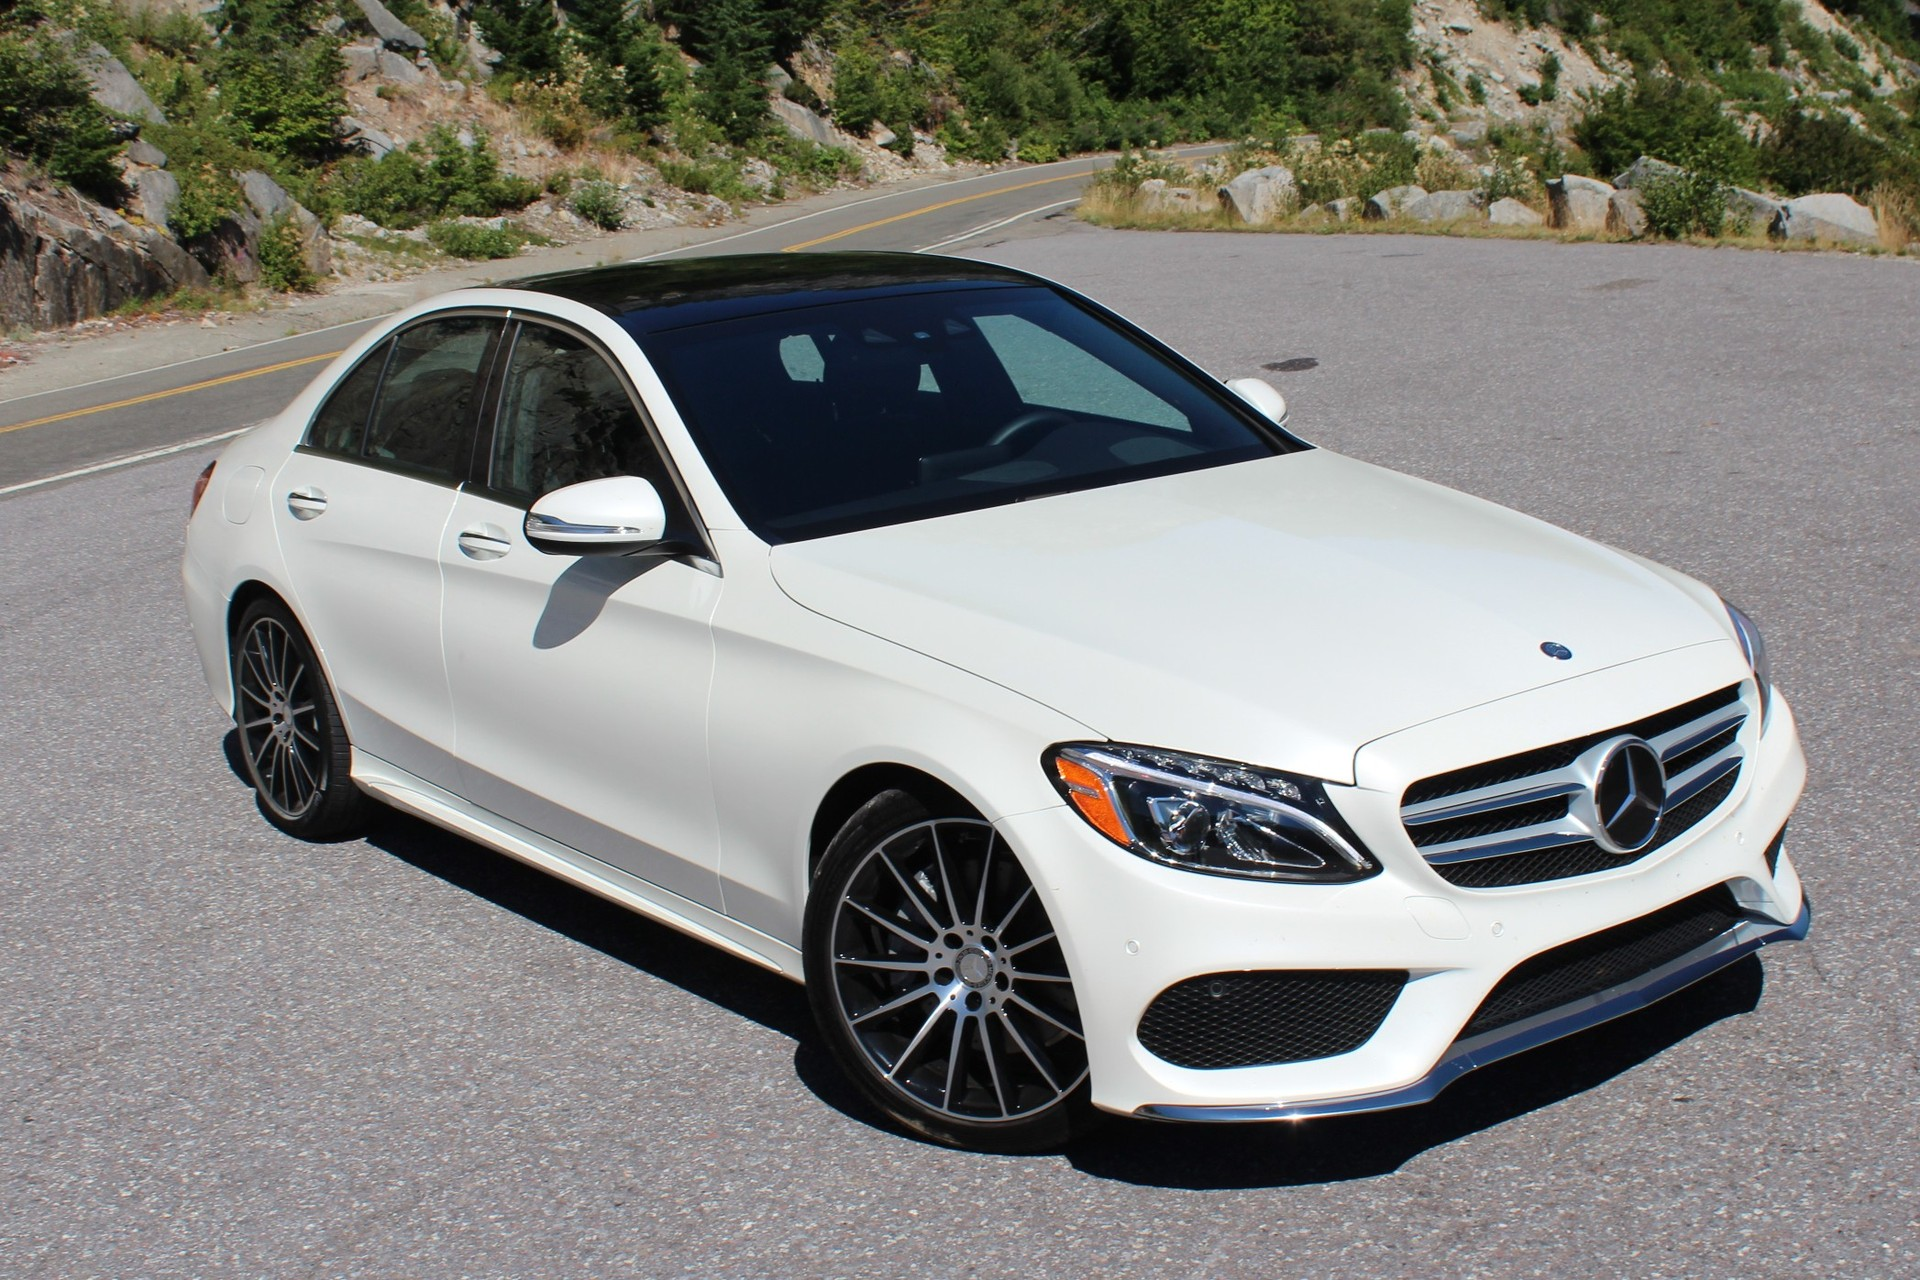 2015 Mercedes-Benz C-Class first drive review